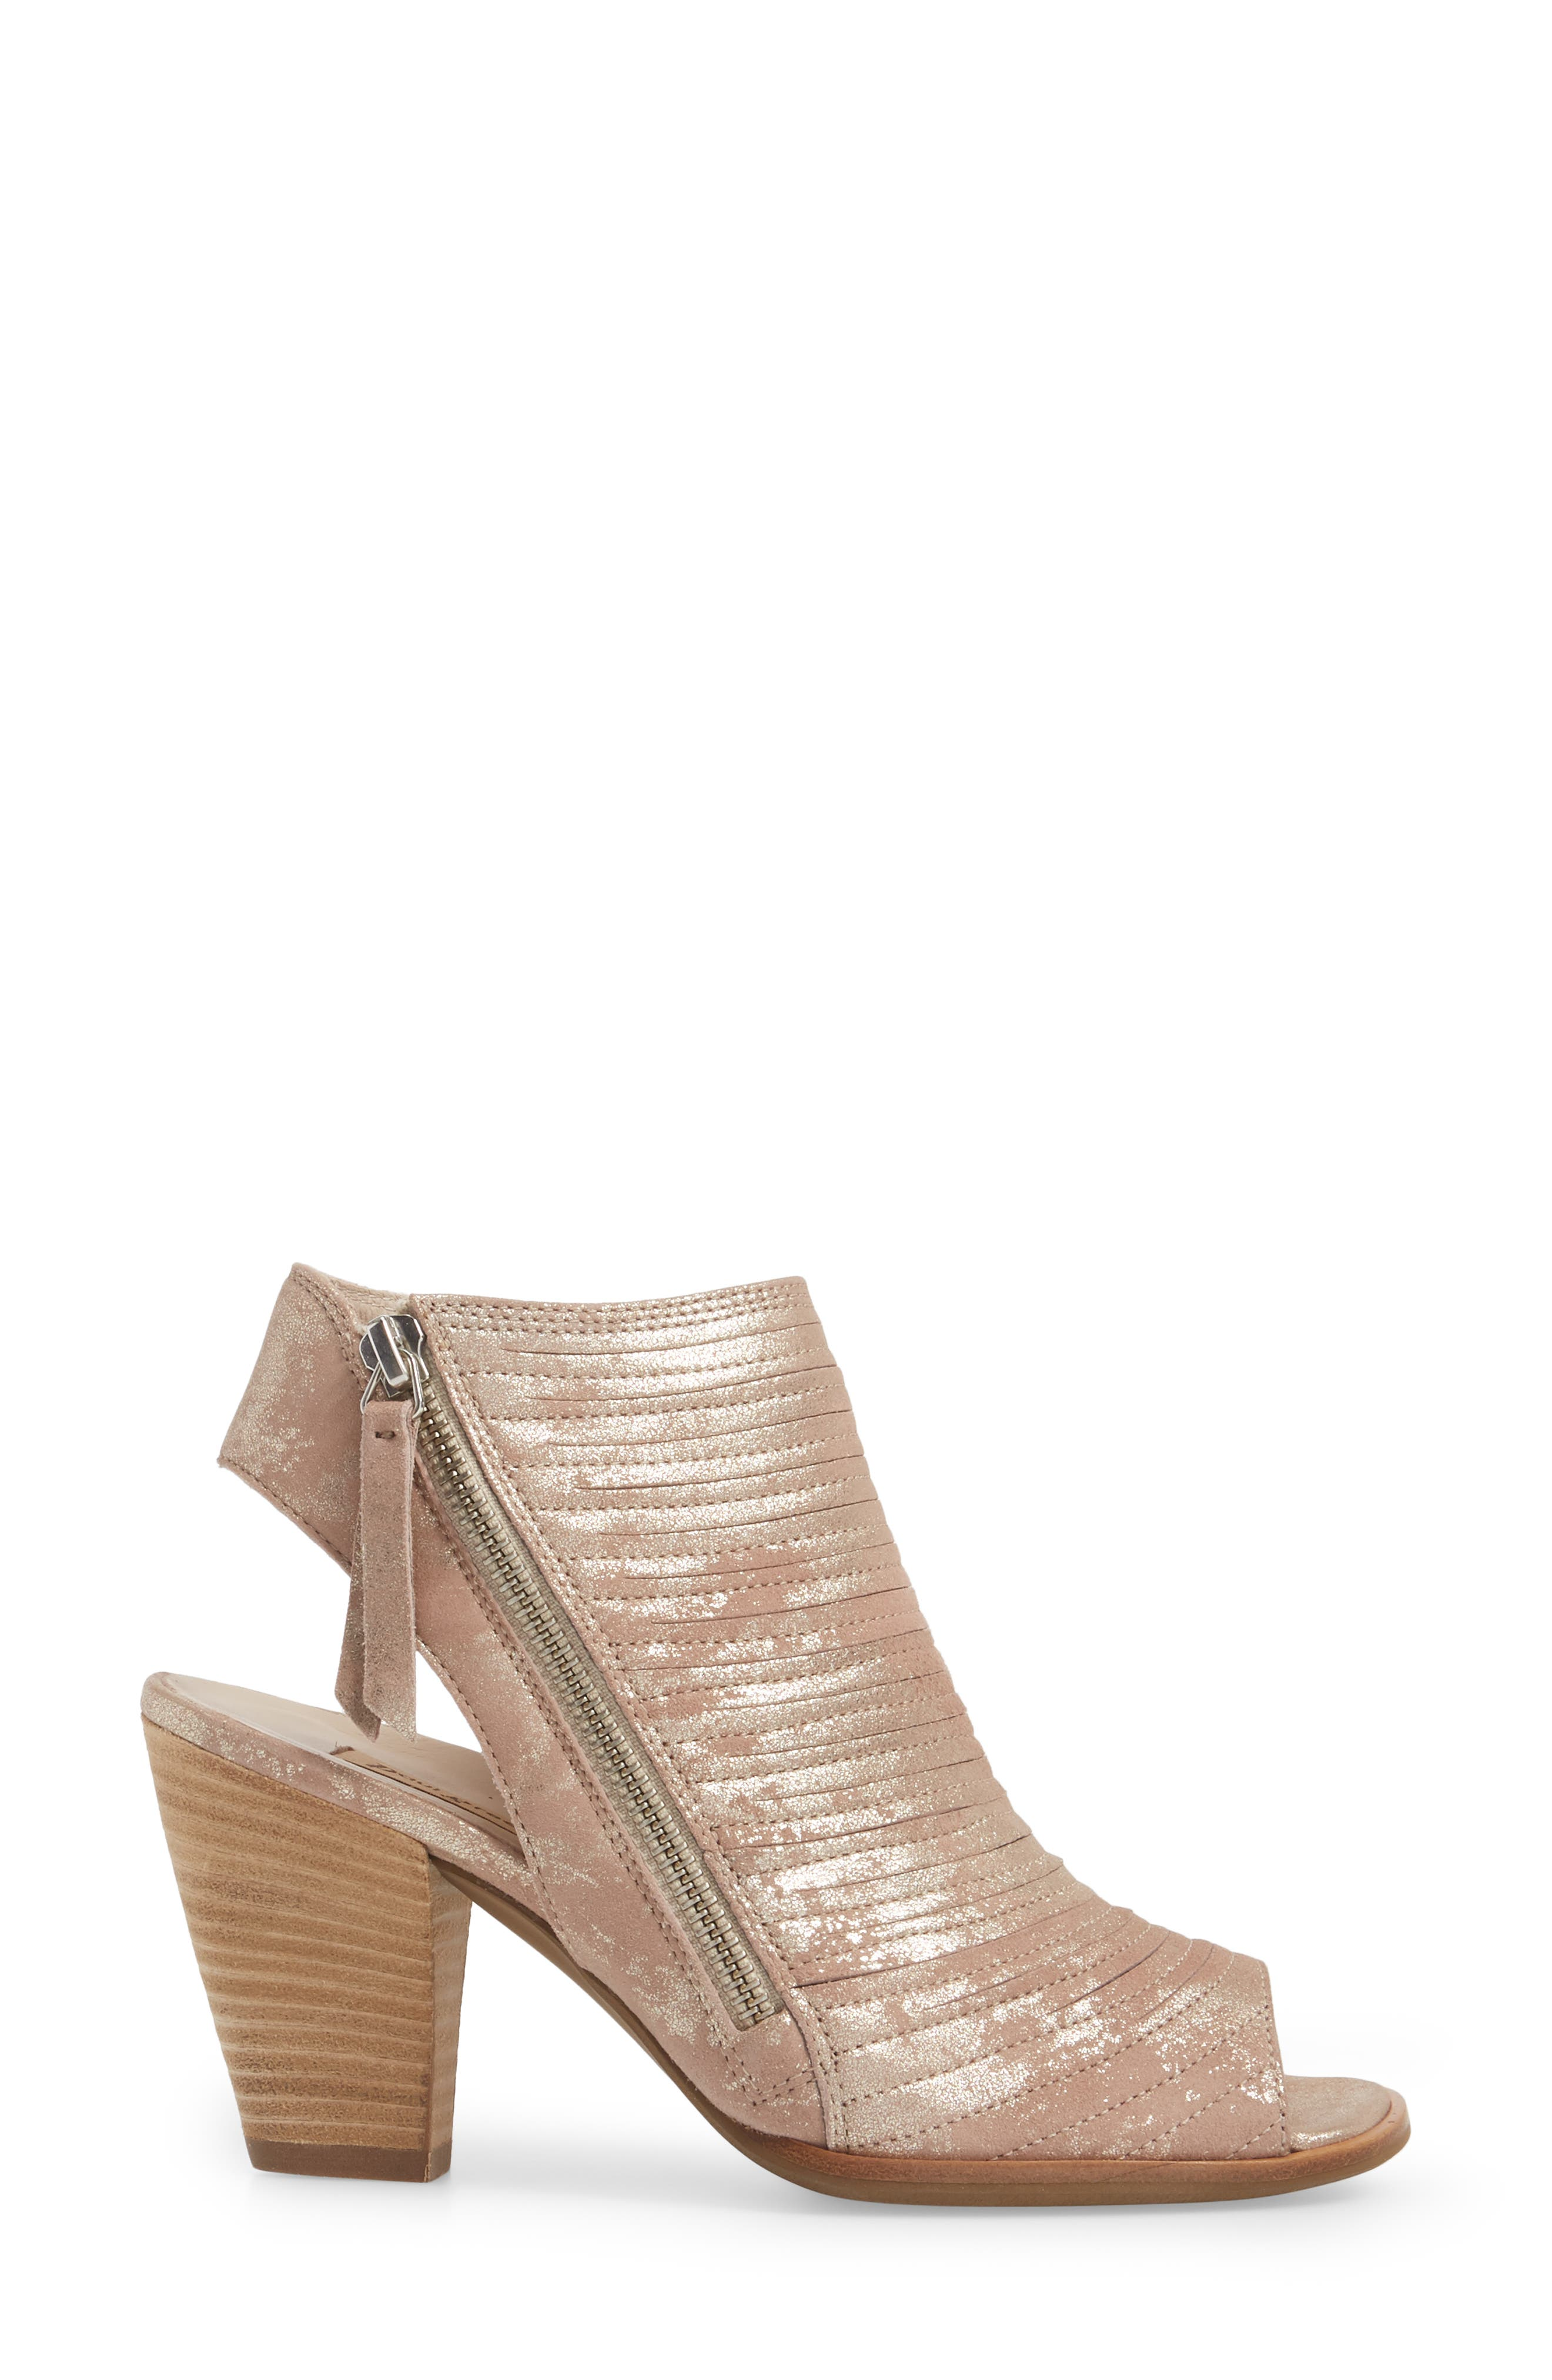 ,                             'Cayanne' Leather Peep Toe Sandal,                             Alternate thumbnail 34, color,                             688